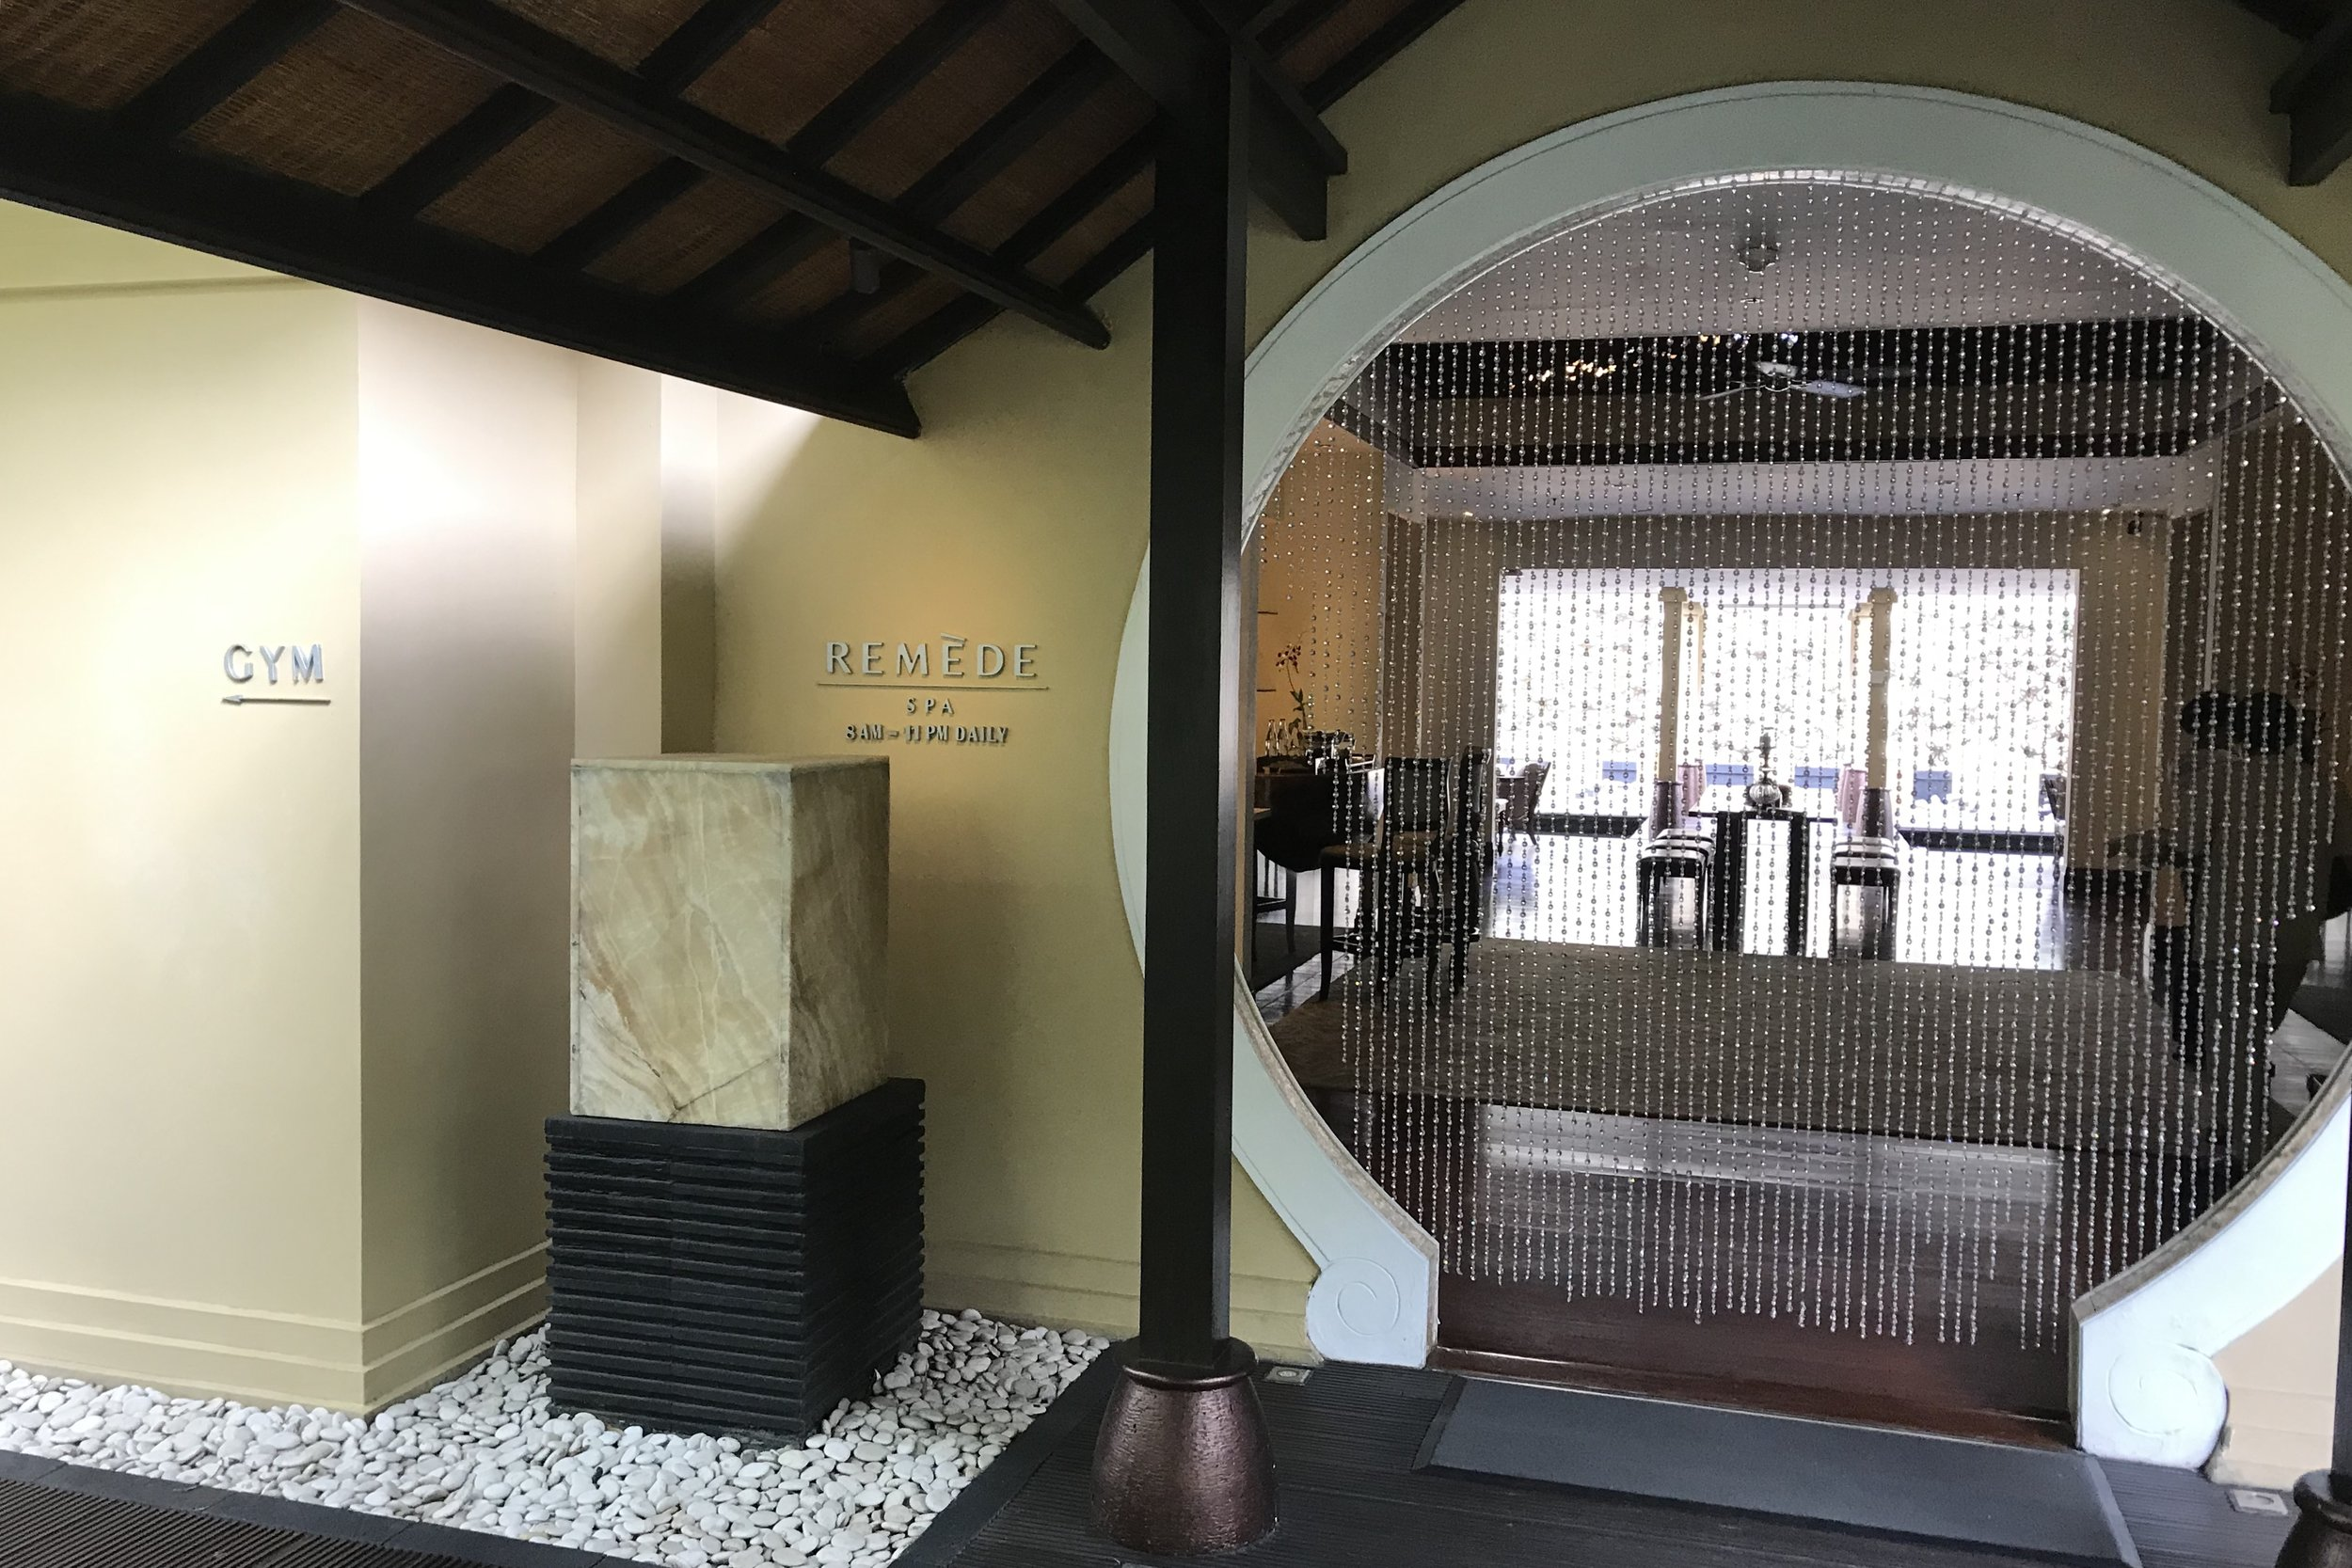 St. Regis Bali – Remede Spa and fitness centre